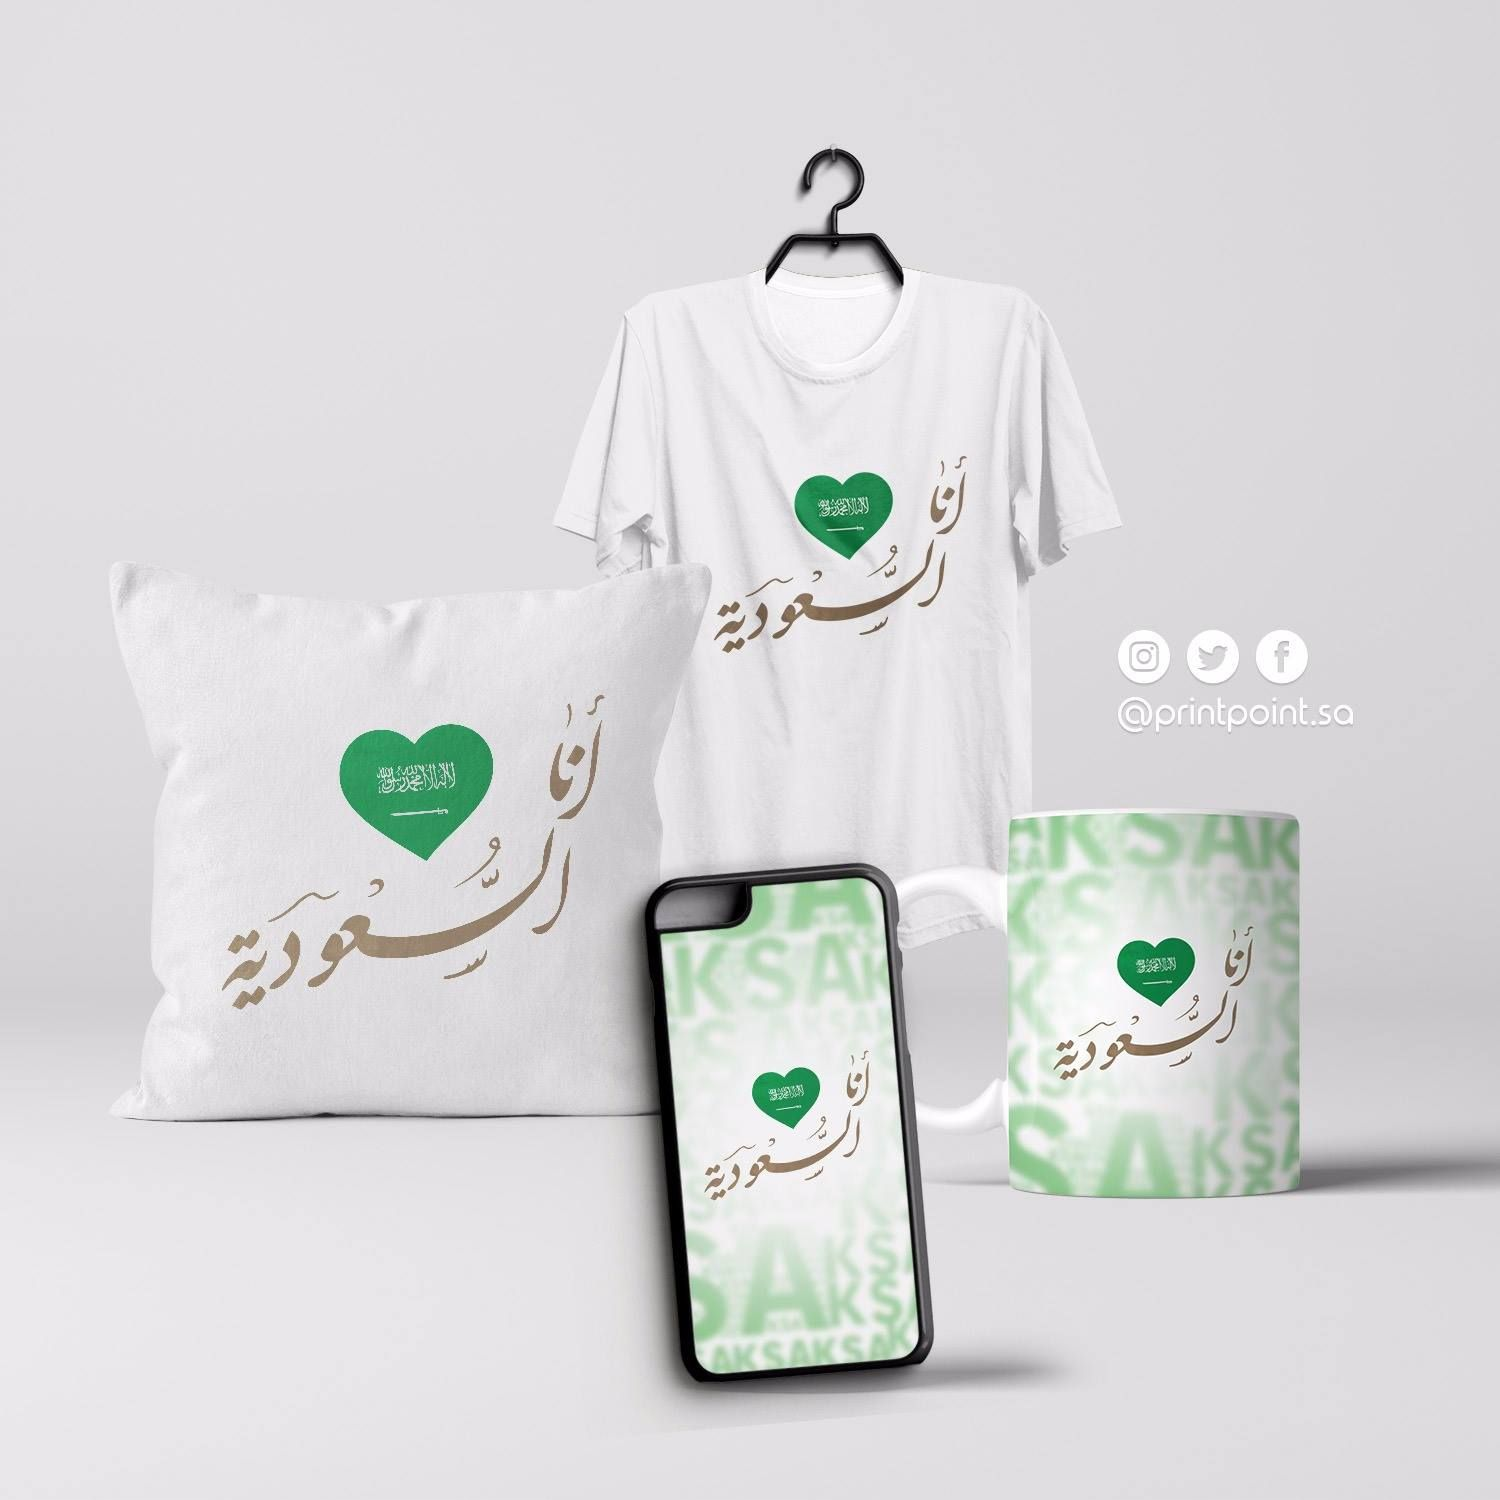 Pin By ام أفنان السماوي On افكار دعايه Reusable Tote Bags Reusable Tote Tote Bag